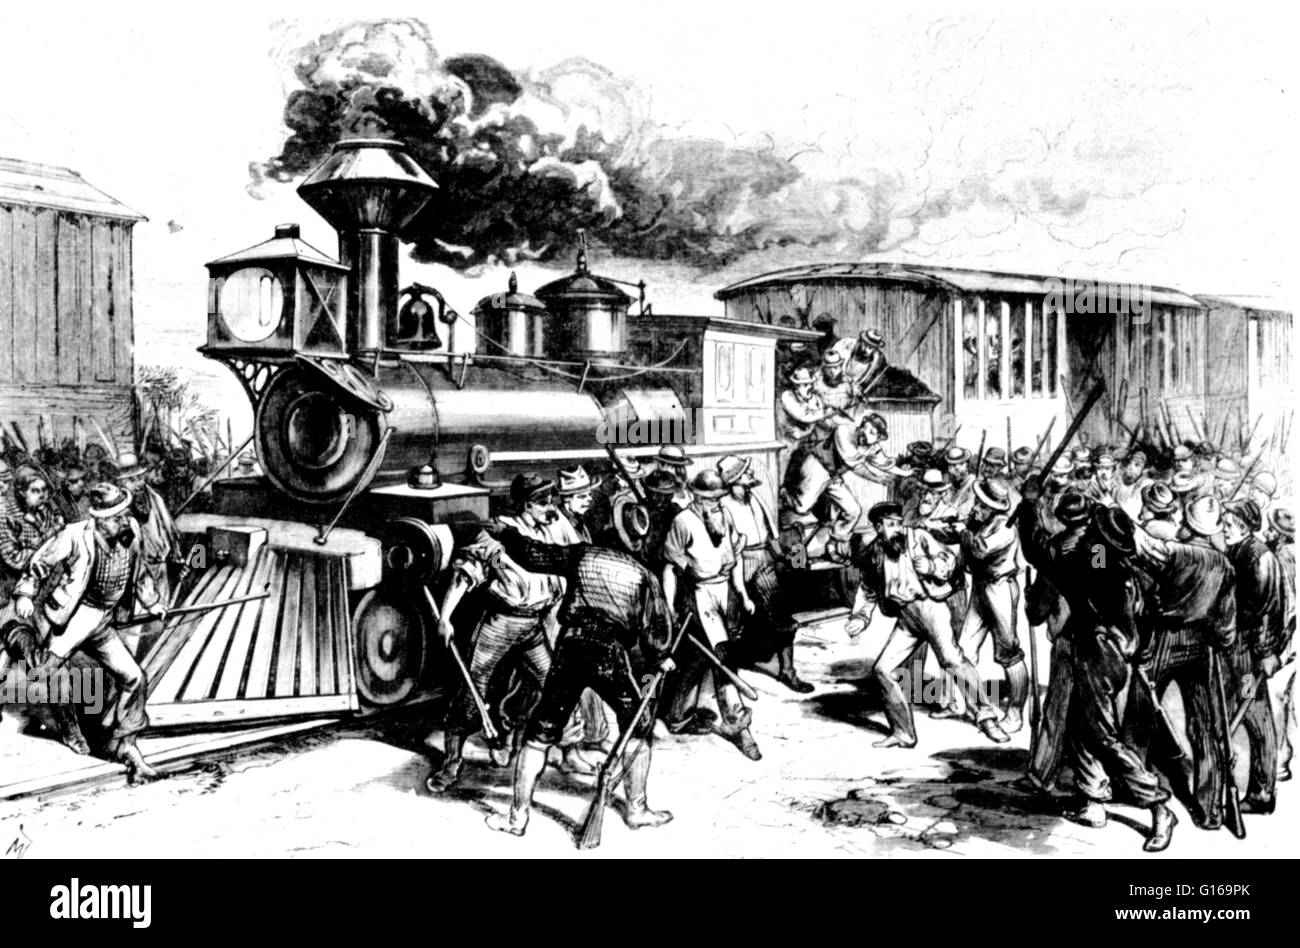 The Great Railroad Strike of 1877 started on July 14 in Martinsburg, West Virginia, in response to the cutting of - Stock Image